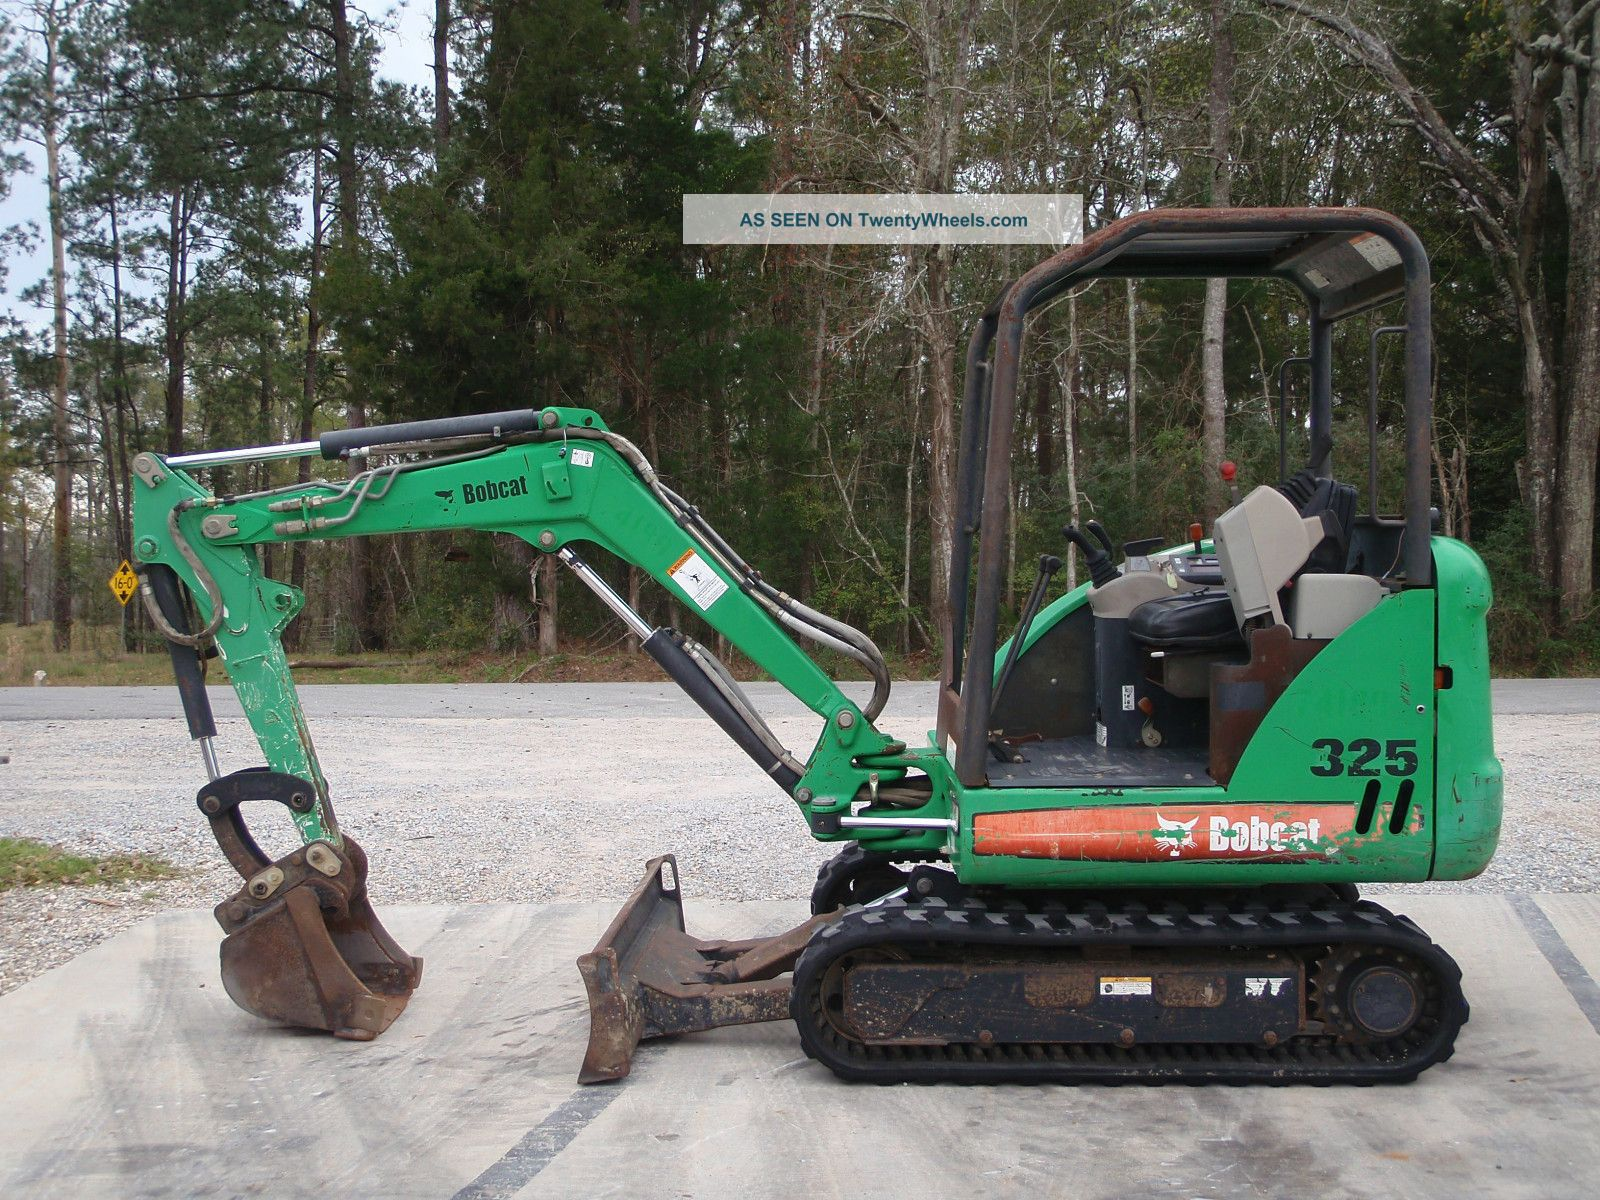 2005 Bobcat 325 G Mini Excavator Construction Heavy Equipment